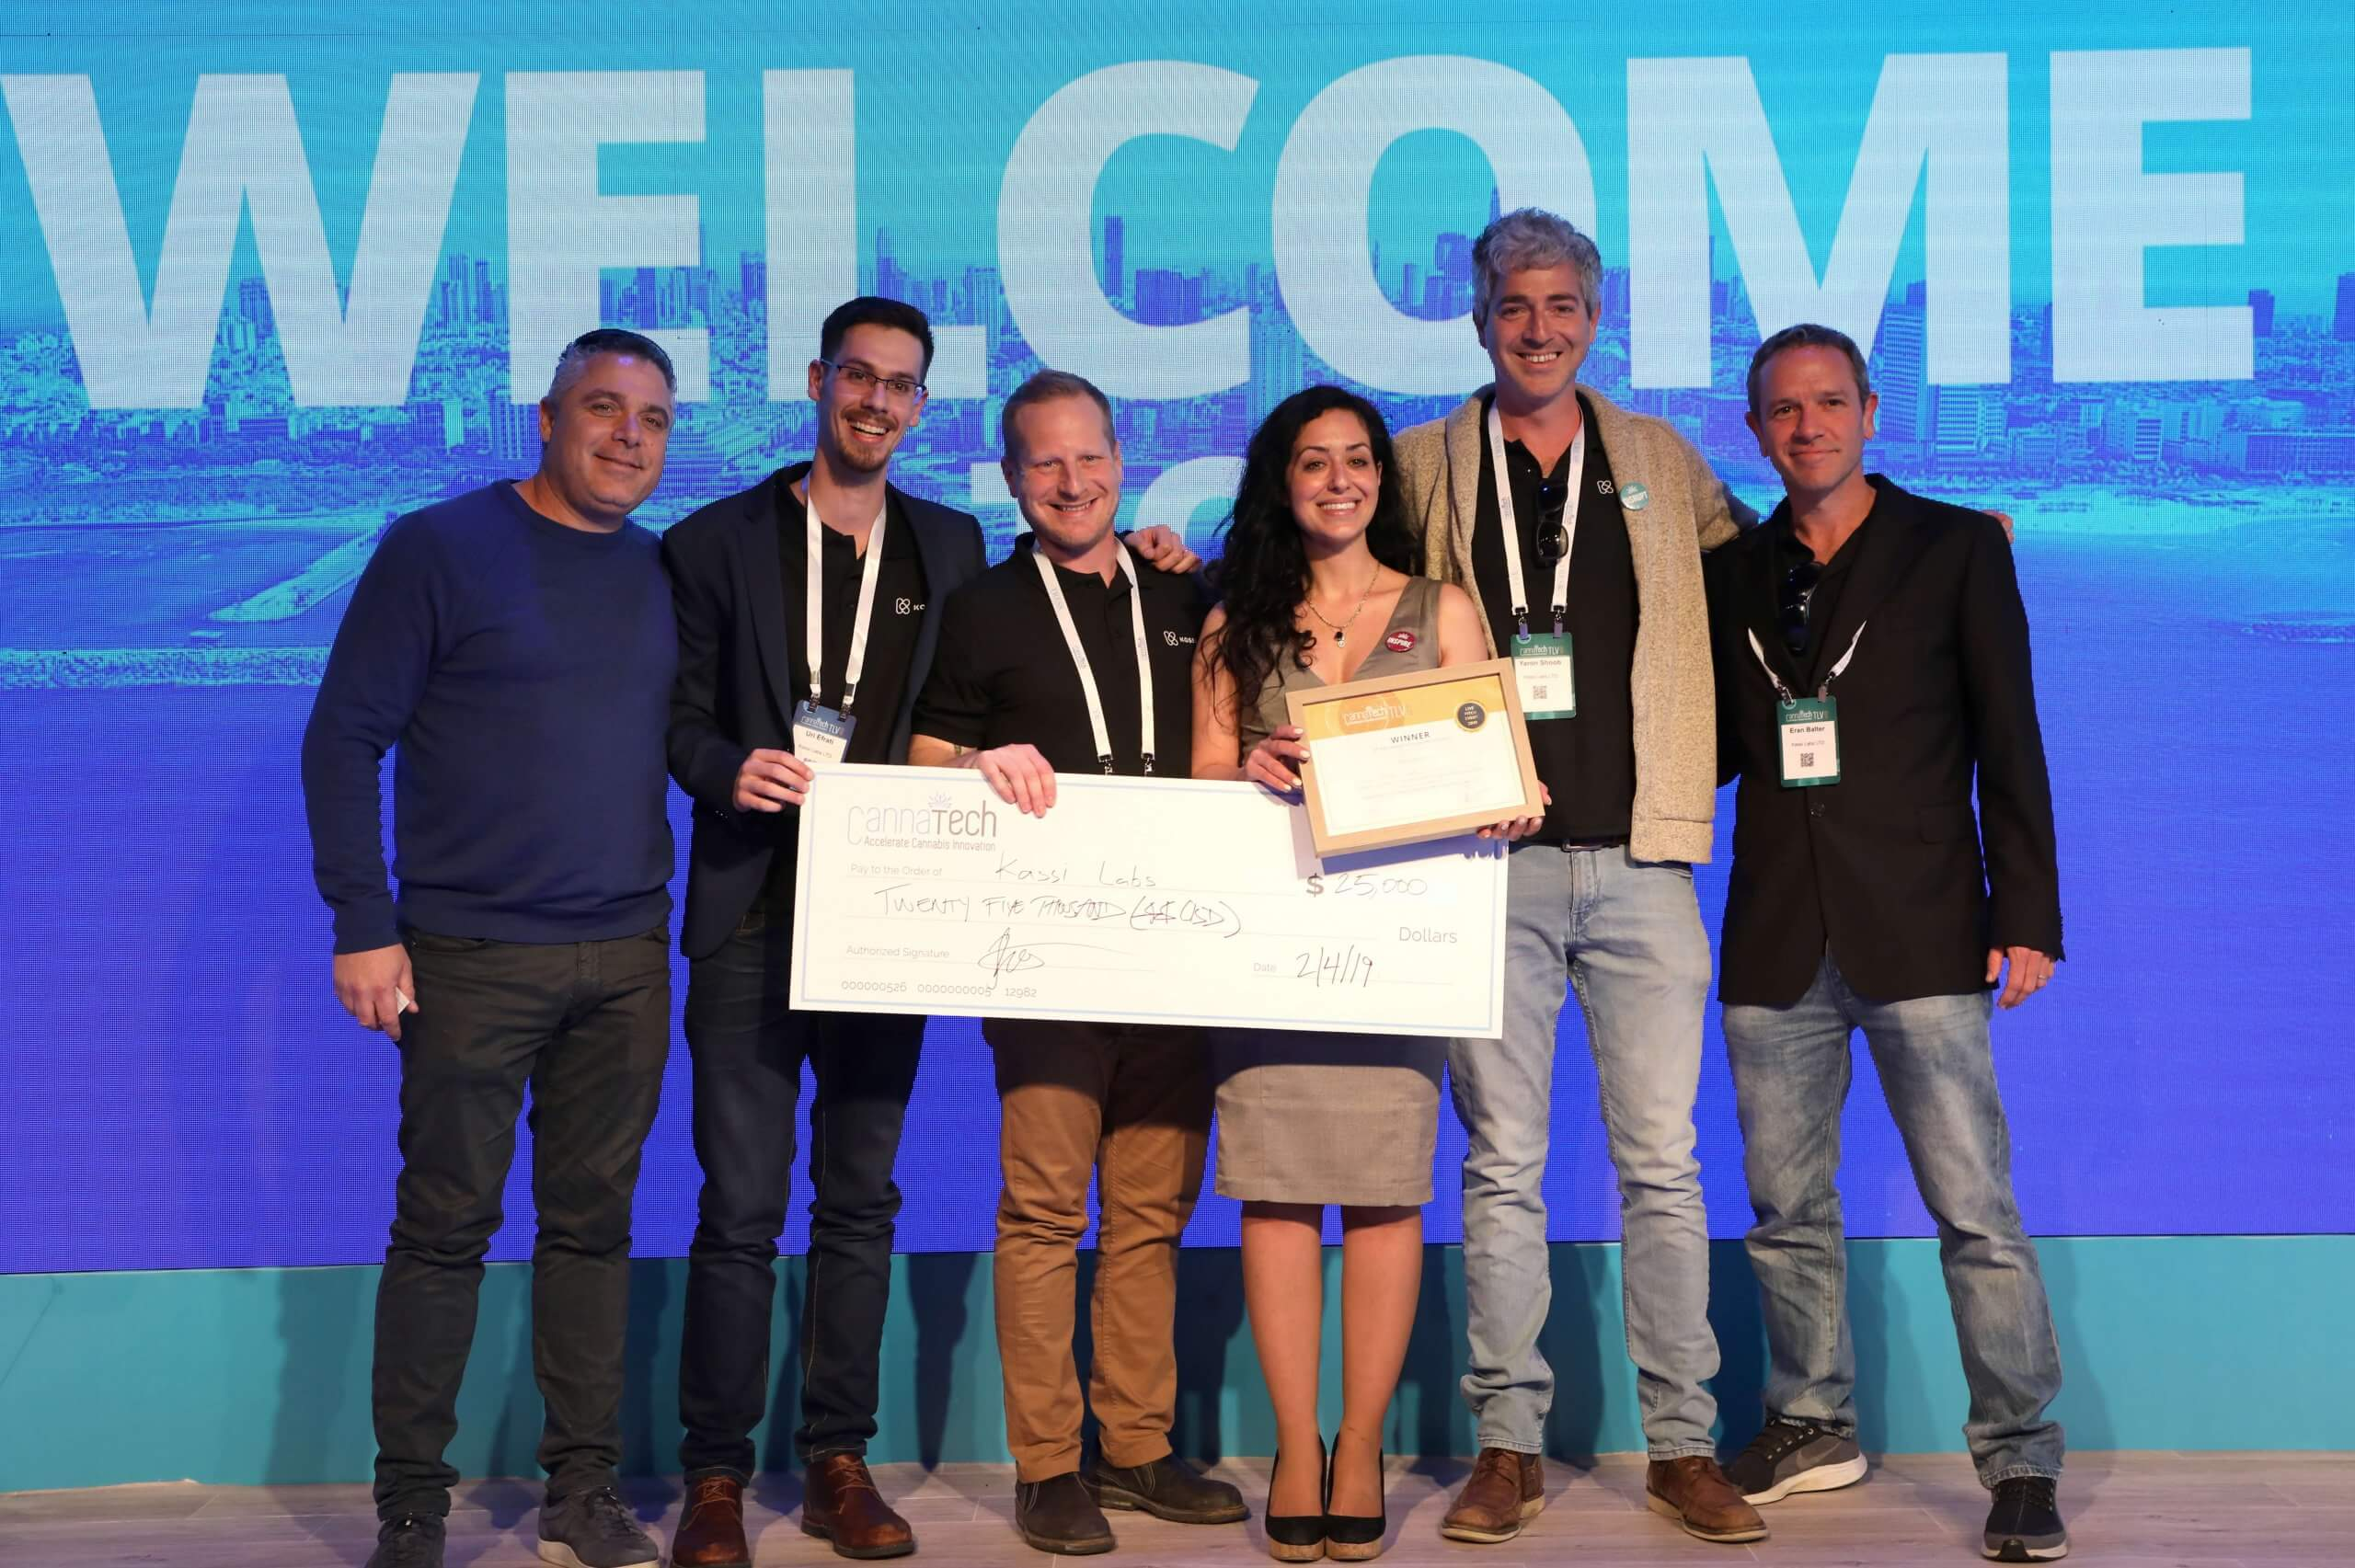 ICYMI: Our 2019 CannaTech Pitch Contenders